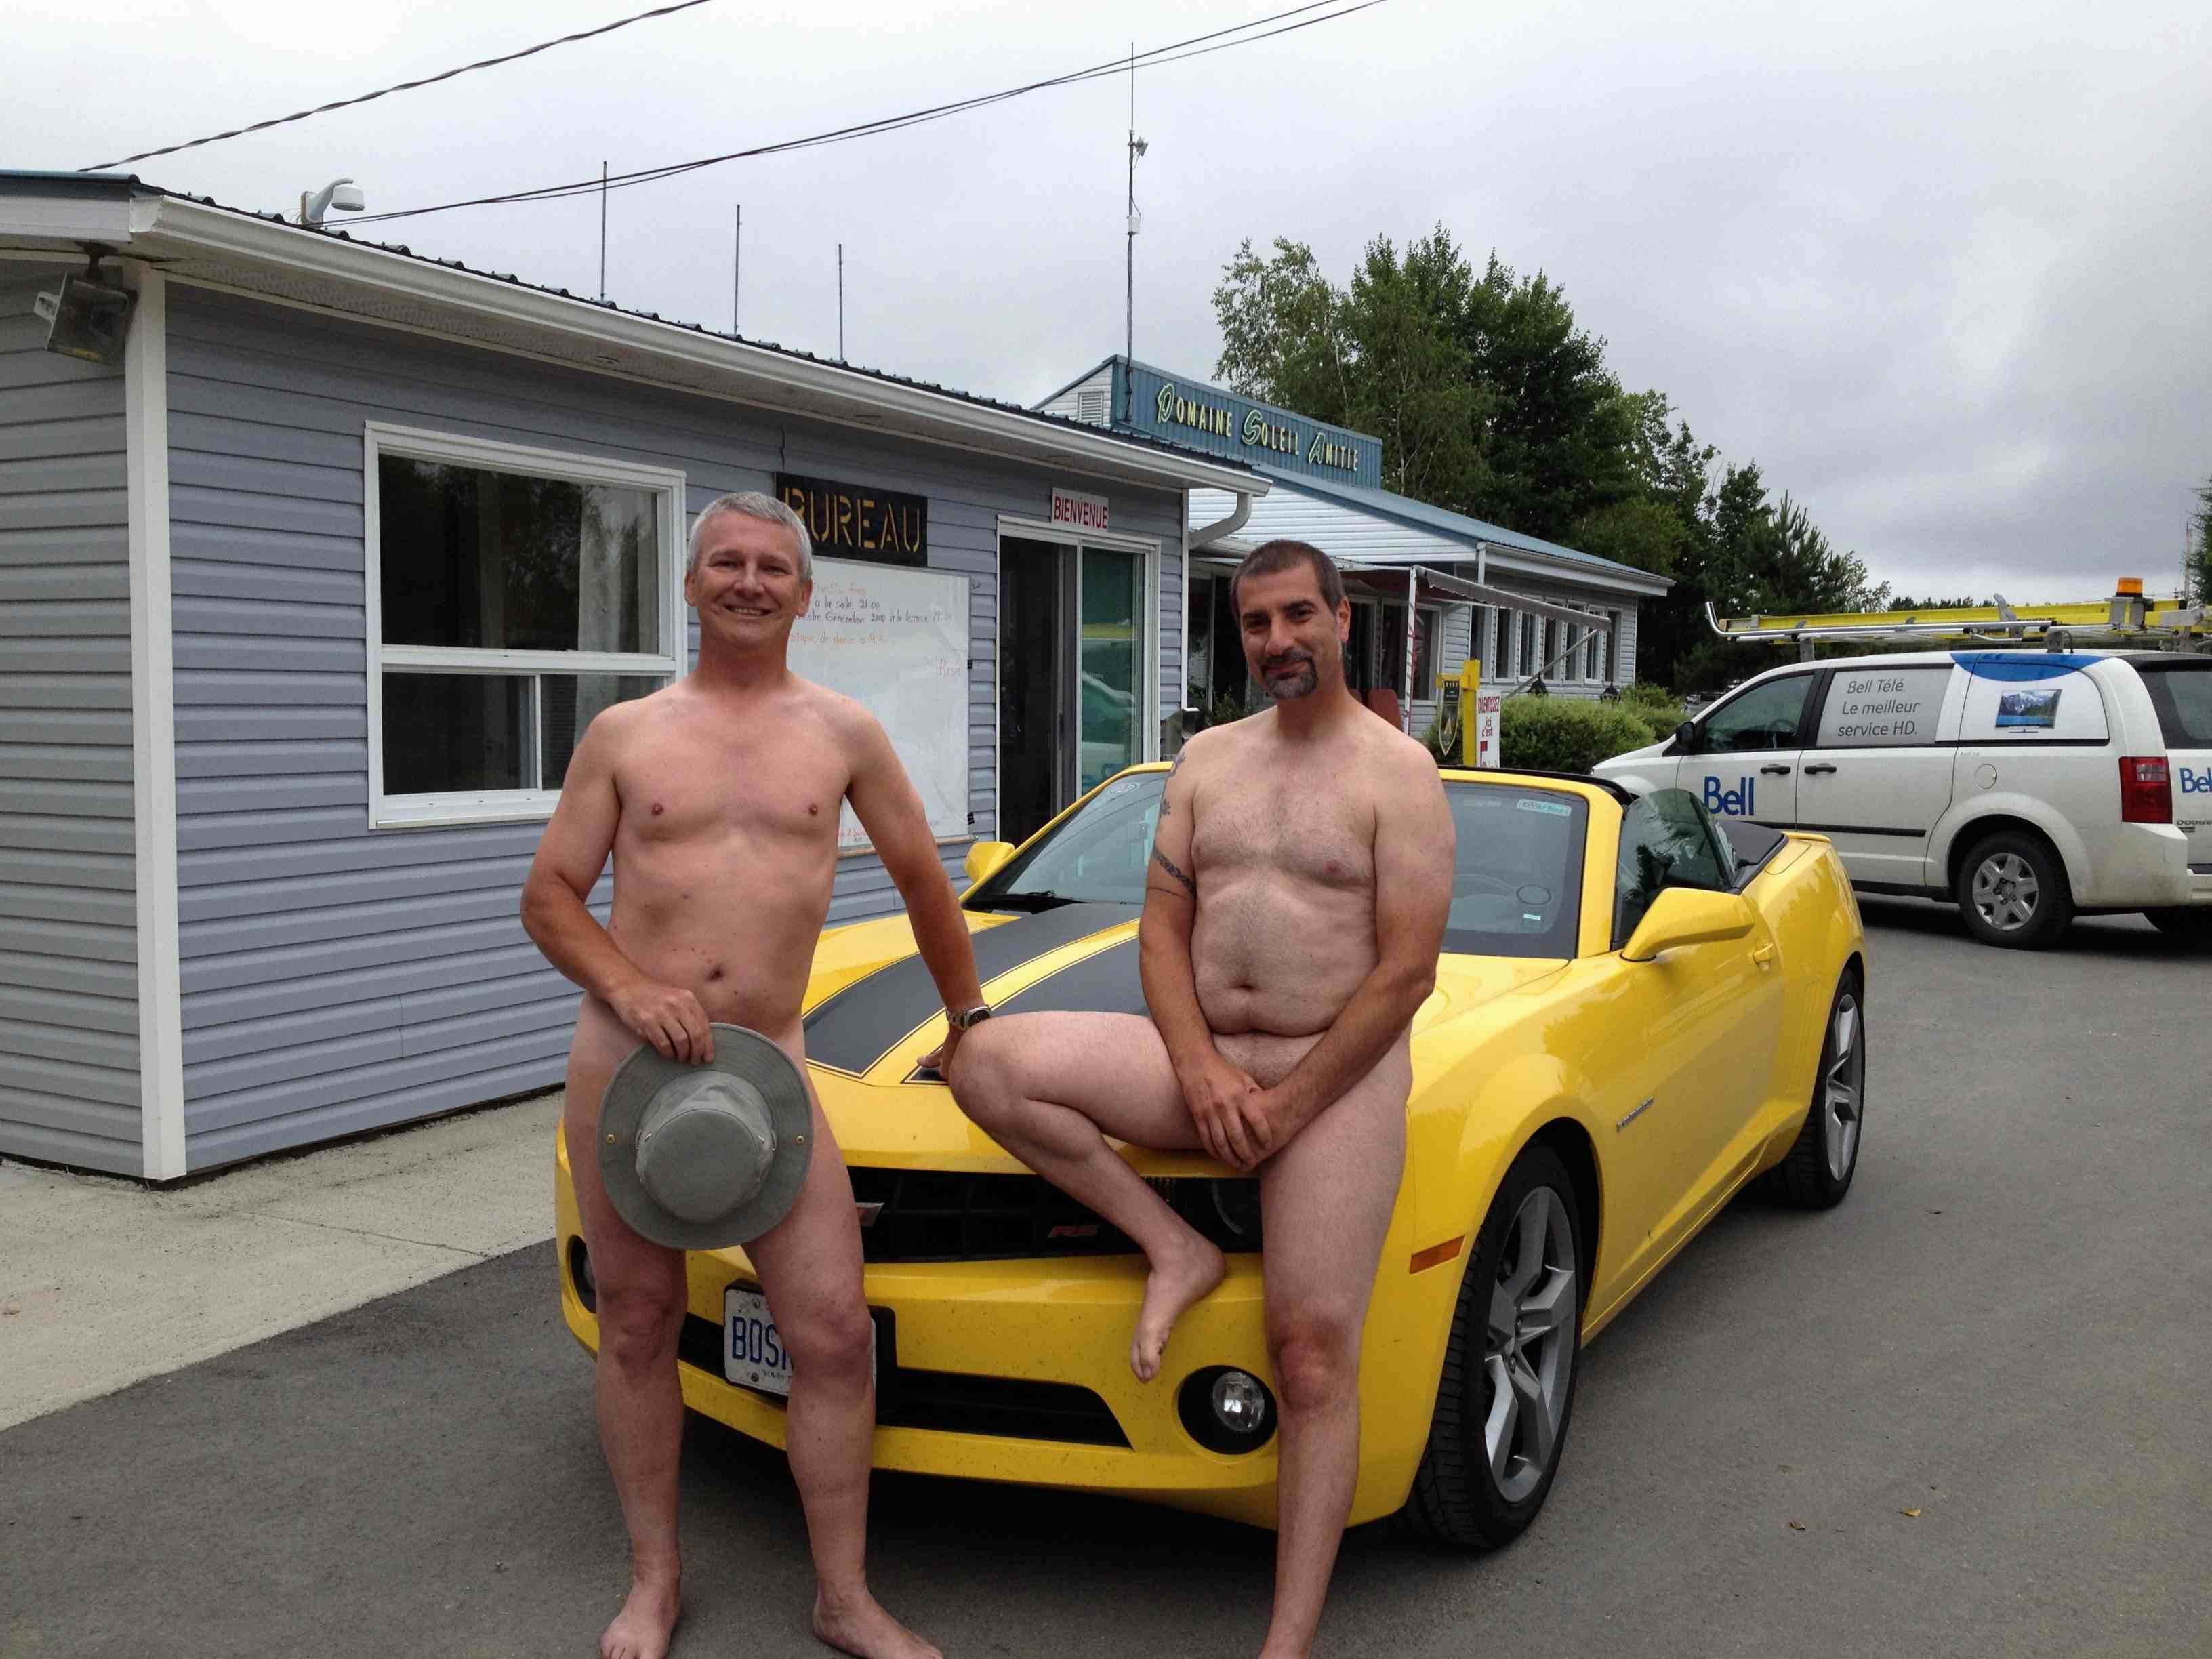 Mark and Costa settle in at the naturist resort